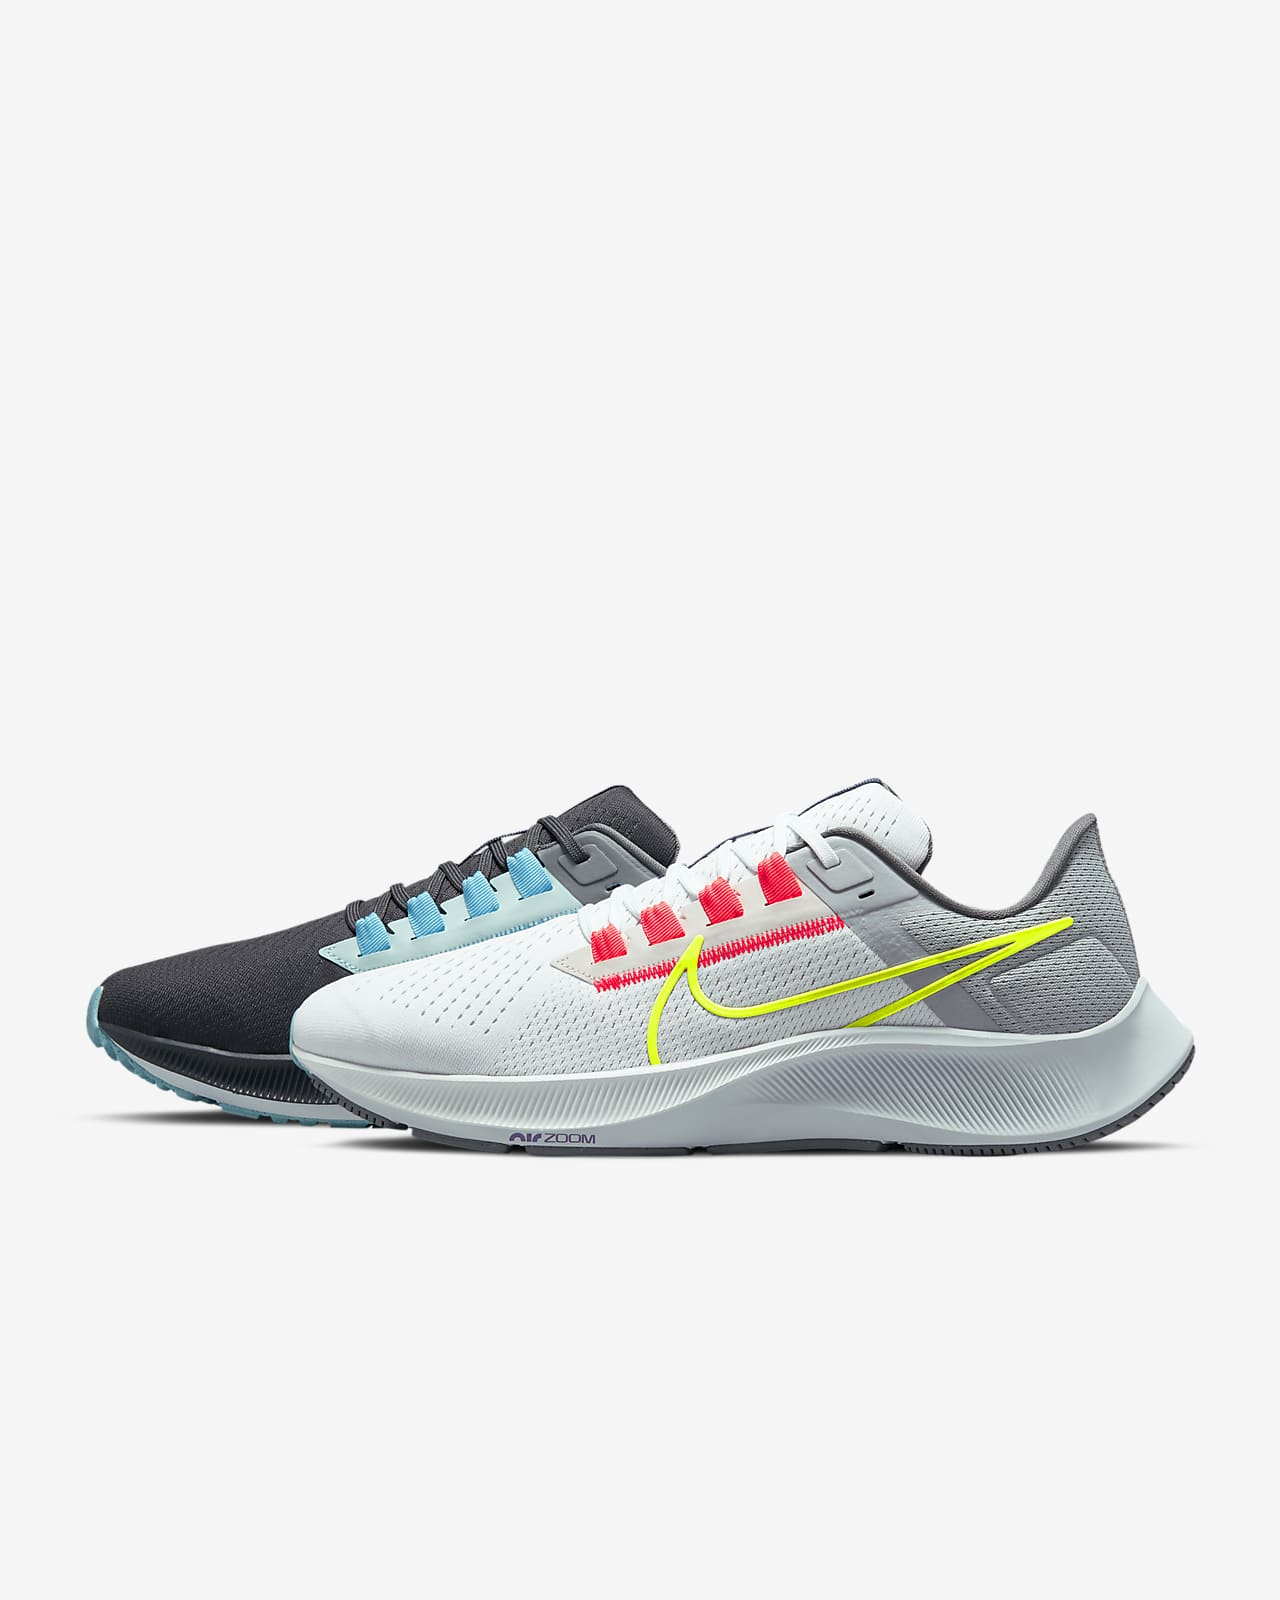 Nike Air Zoom Pegasus 38 Limited Edition Men's Road Running Shoes